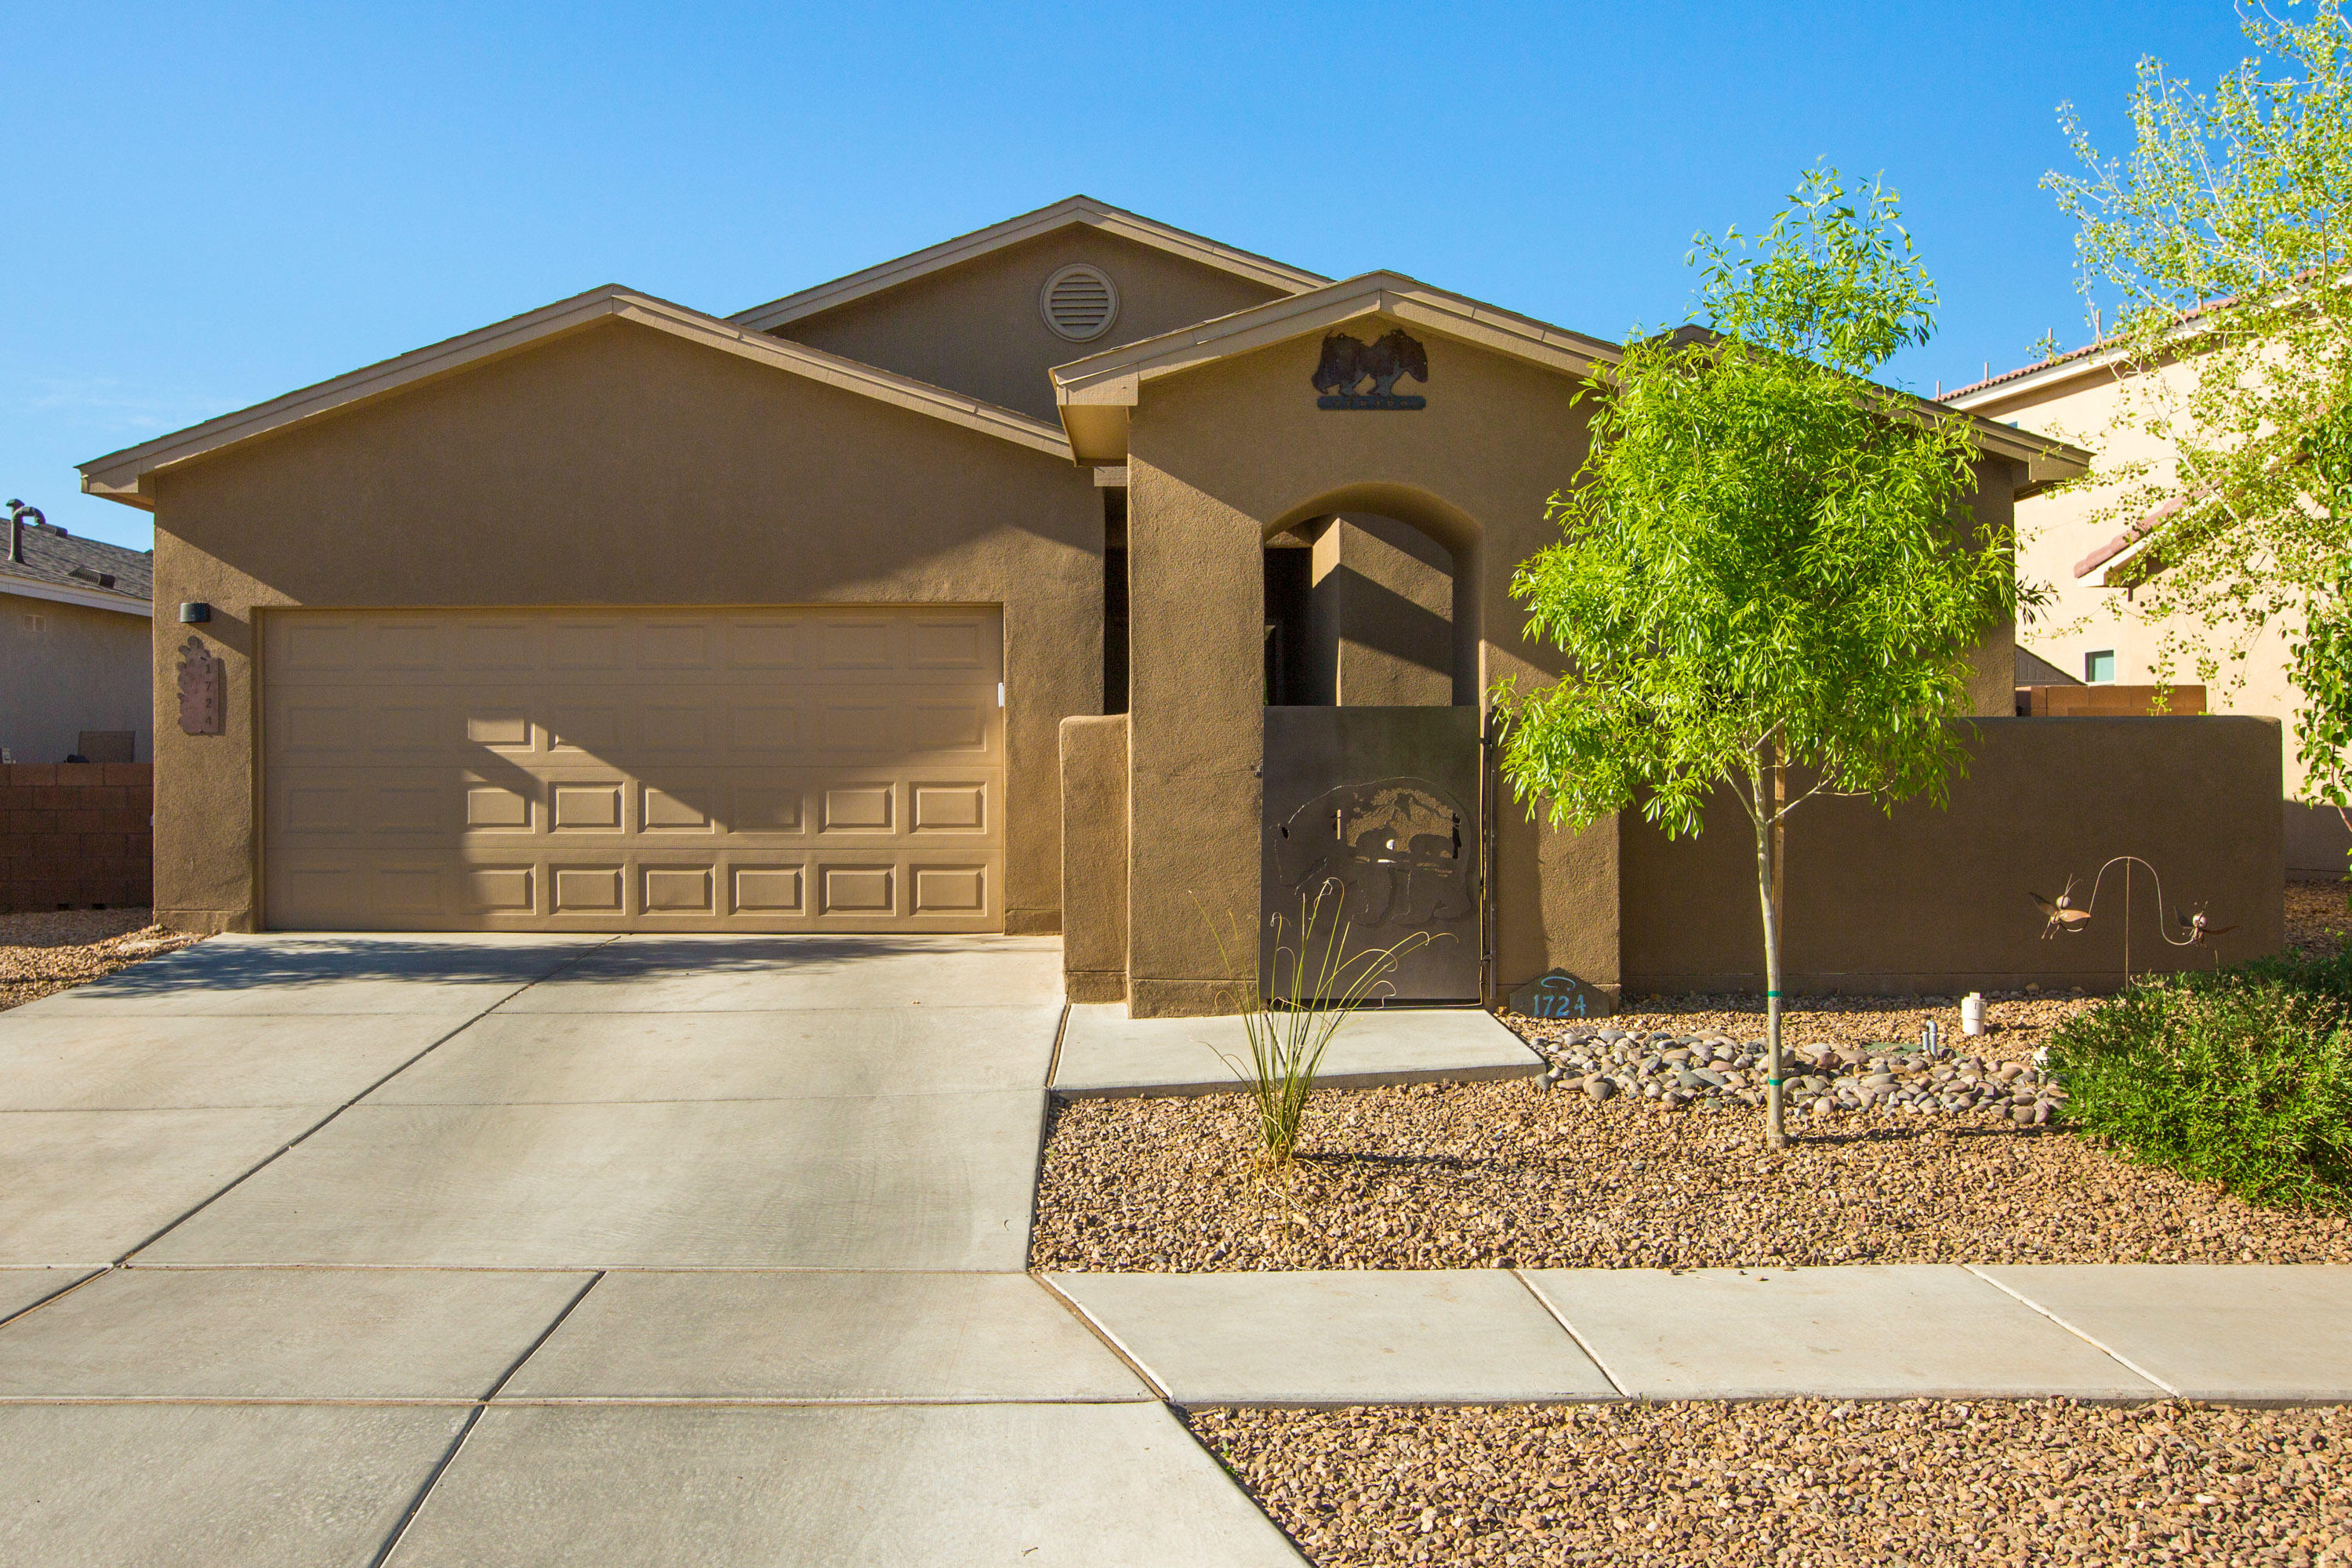 Why wait to build! This newer Twilight  home is nested in the south valley. This lovely home is in a gated community, with easy access to downtown, I-40 and shopping. This home is move in ready, landscaped back yard and much more. A must see!!